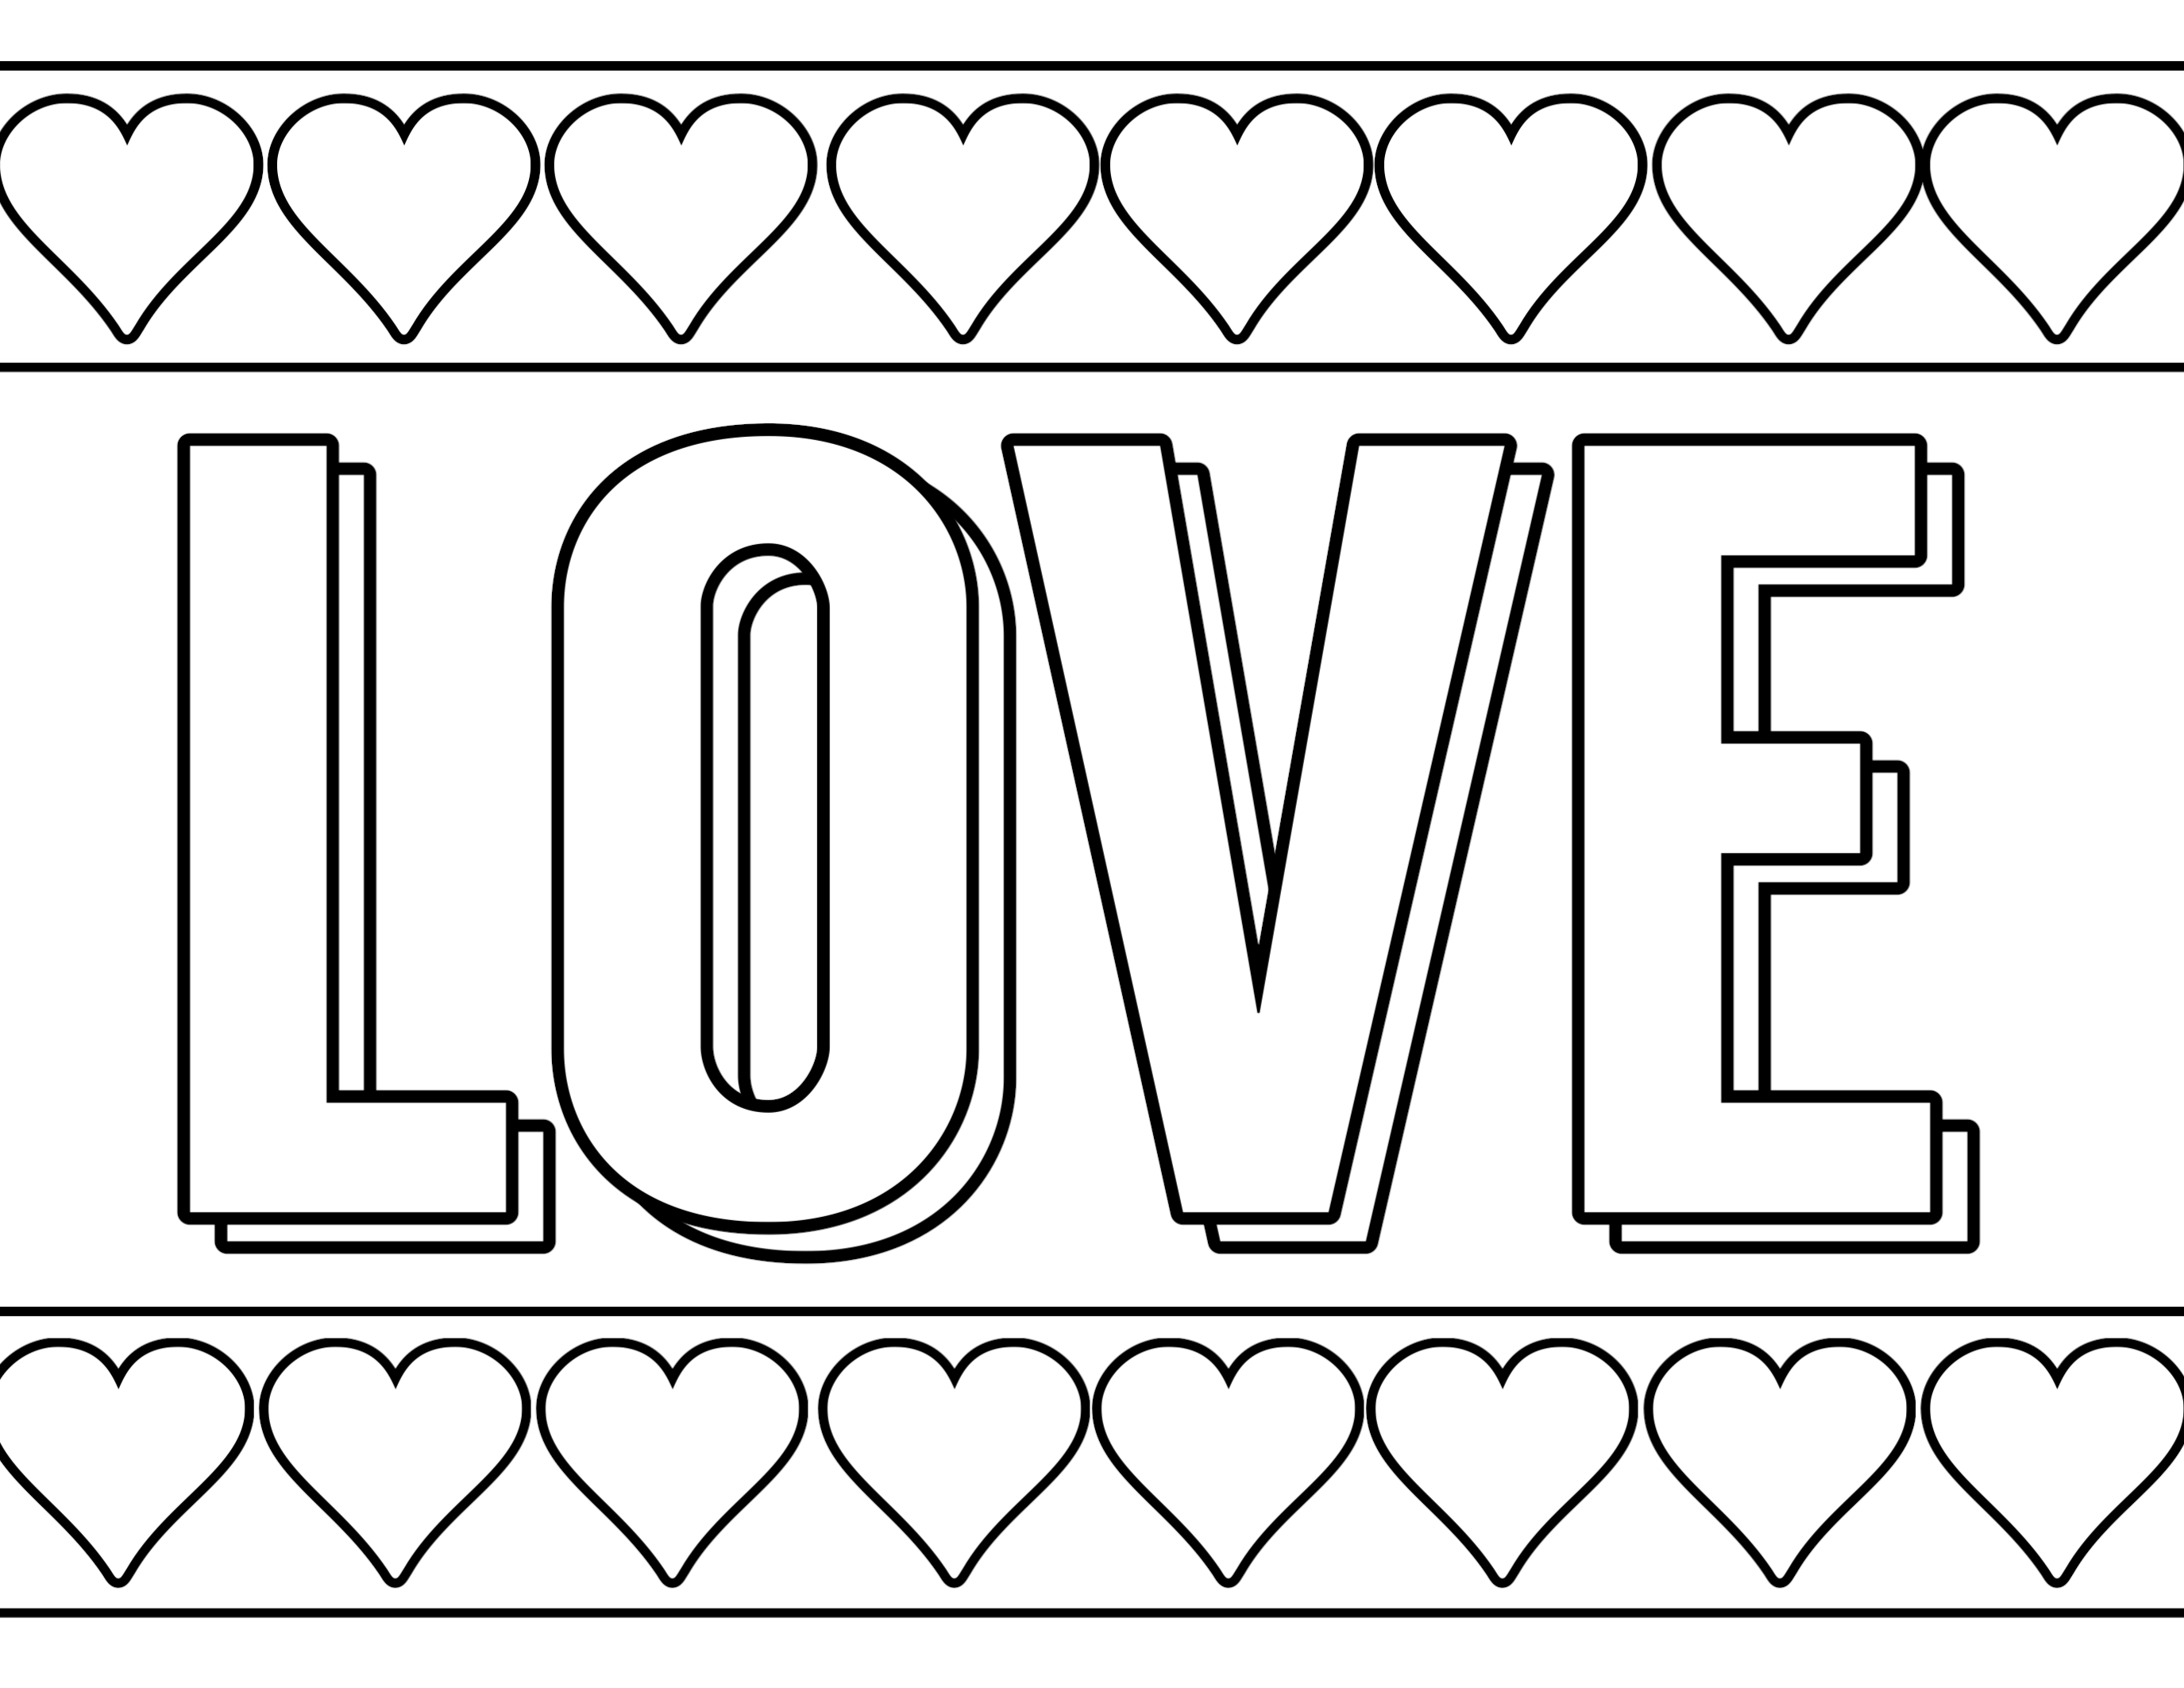 valentines day coloring pages free printable free printable valentine coloring pages paper trail design valentines pages printable coloring free day